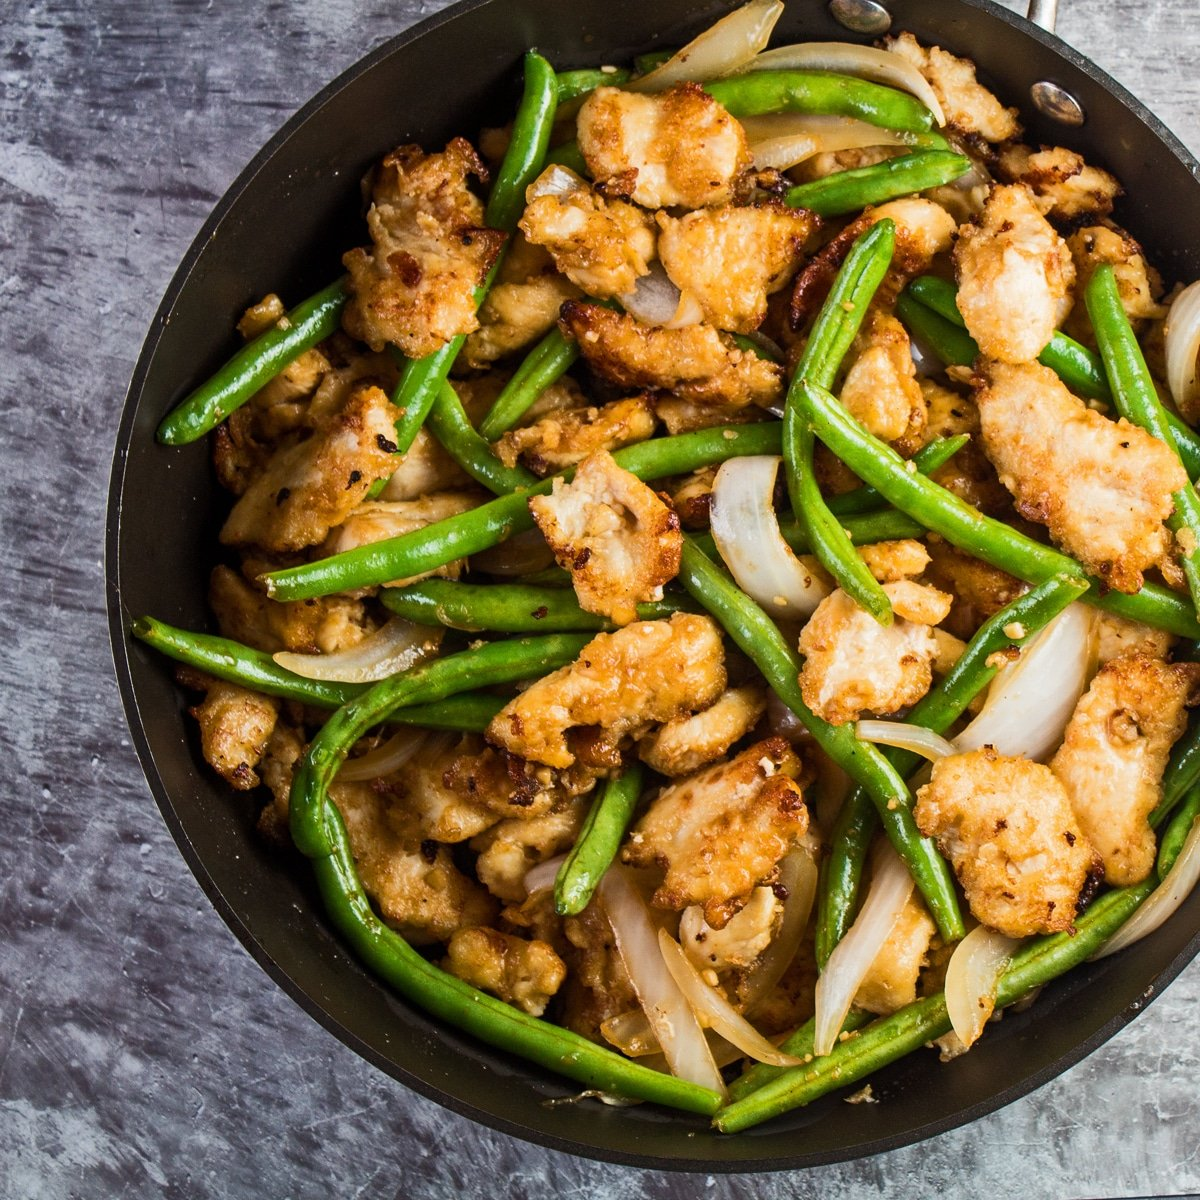 Large square overhead of the finished stir fried panda express string bean chicken before serving.